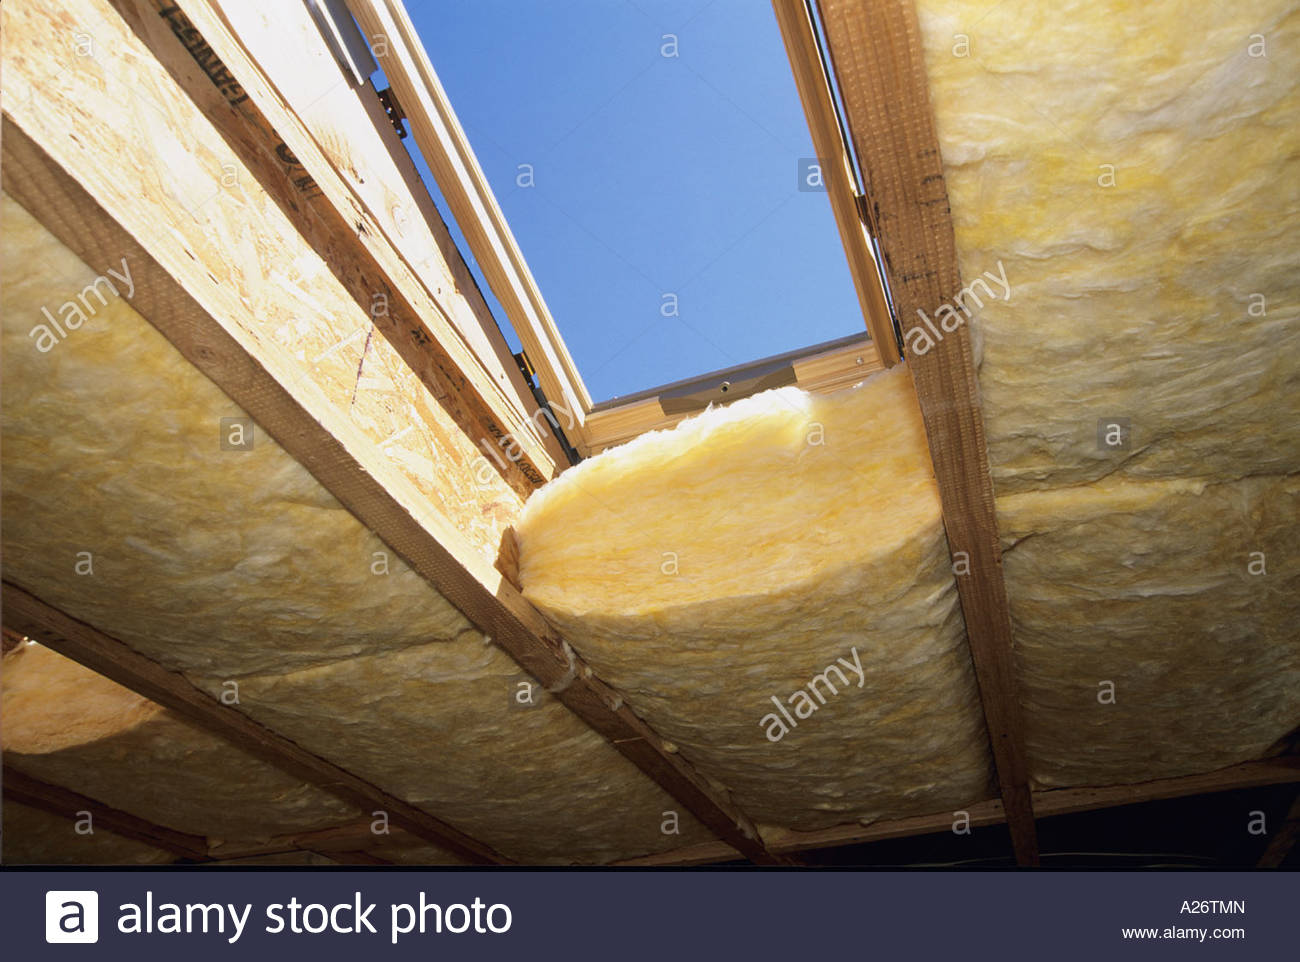 R38 Fiberglass Insulation Being Installed Roof In New Loft Style Home Under  Construction